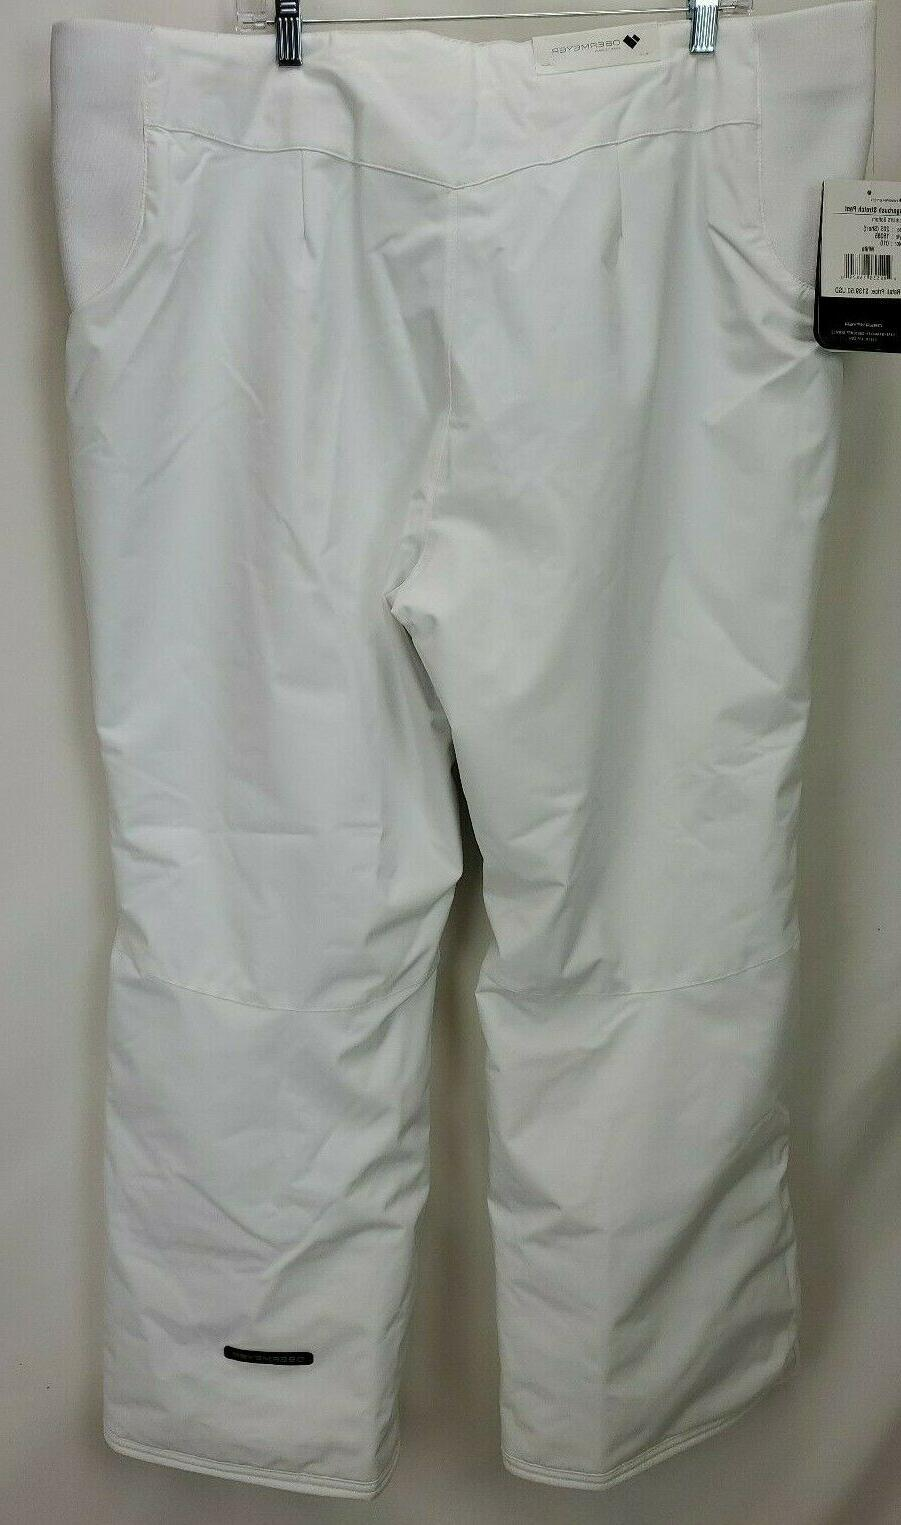 Obermeyer Womens Waterproof Insulated Ski 2XL White Stretch